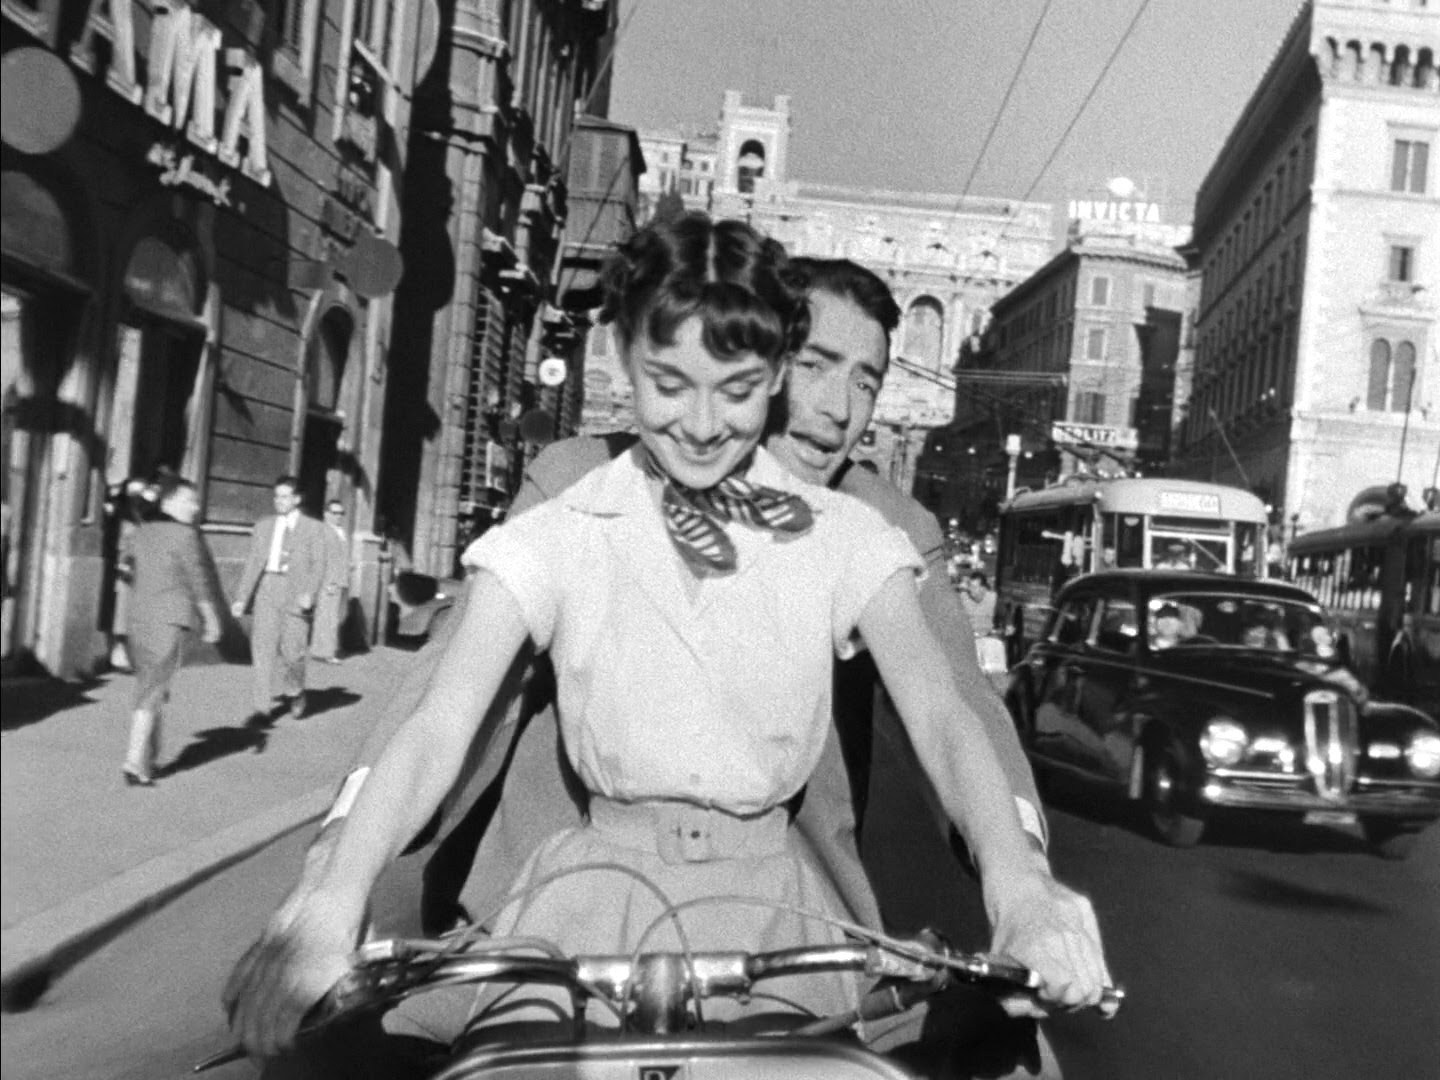 File:Audrey Hepburn and Gregory Peck on Vespa in Roman Holiday trailer.jpg